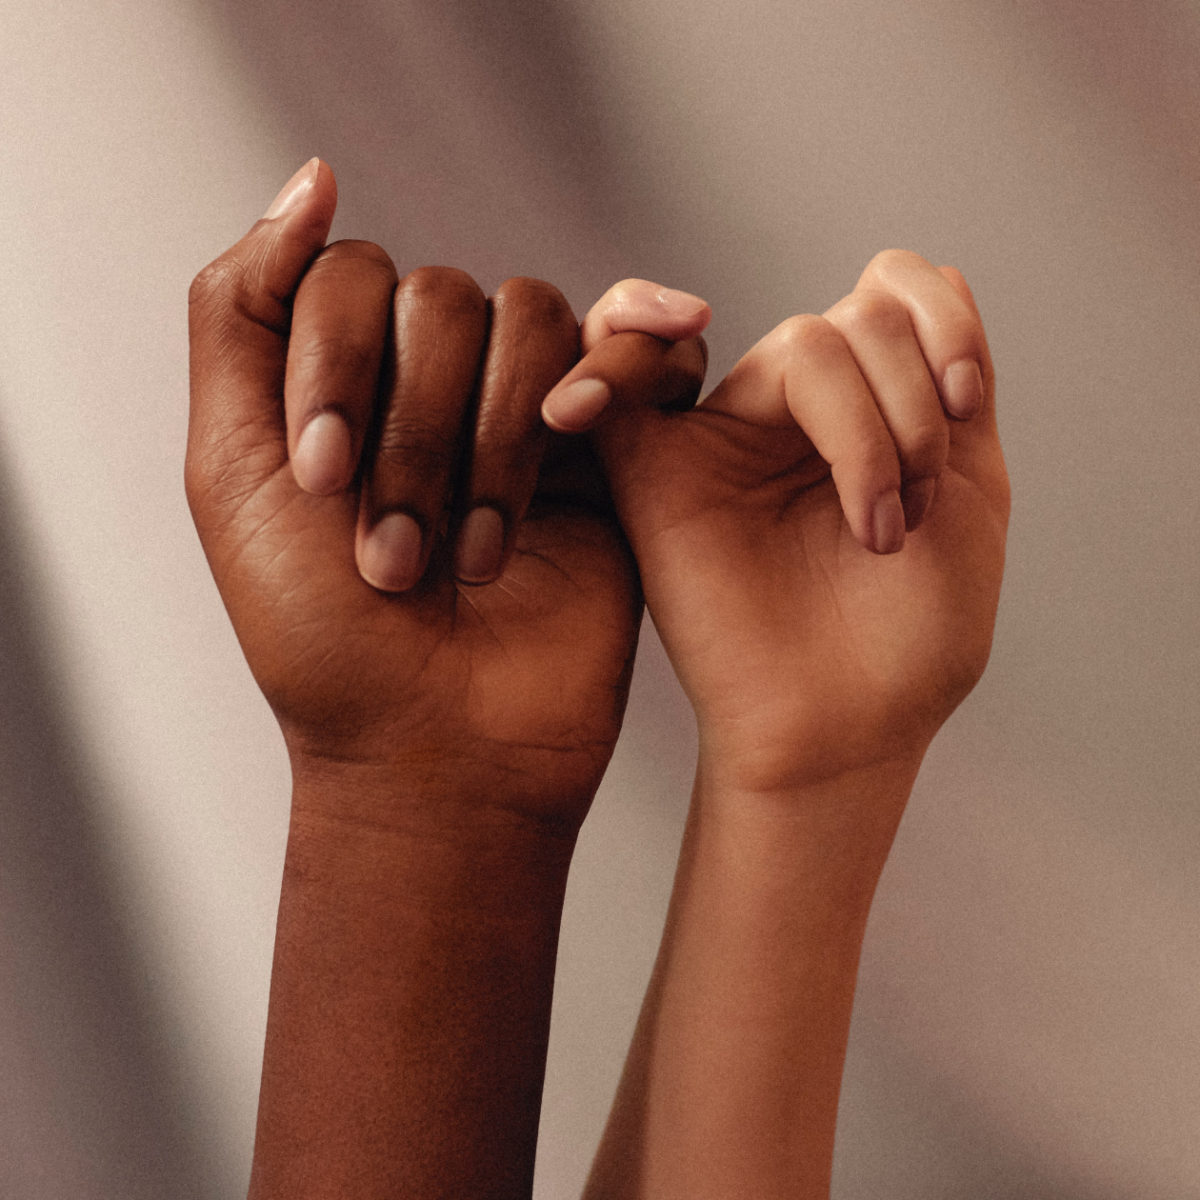 Two women of color with interlocking pinky fingers.